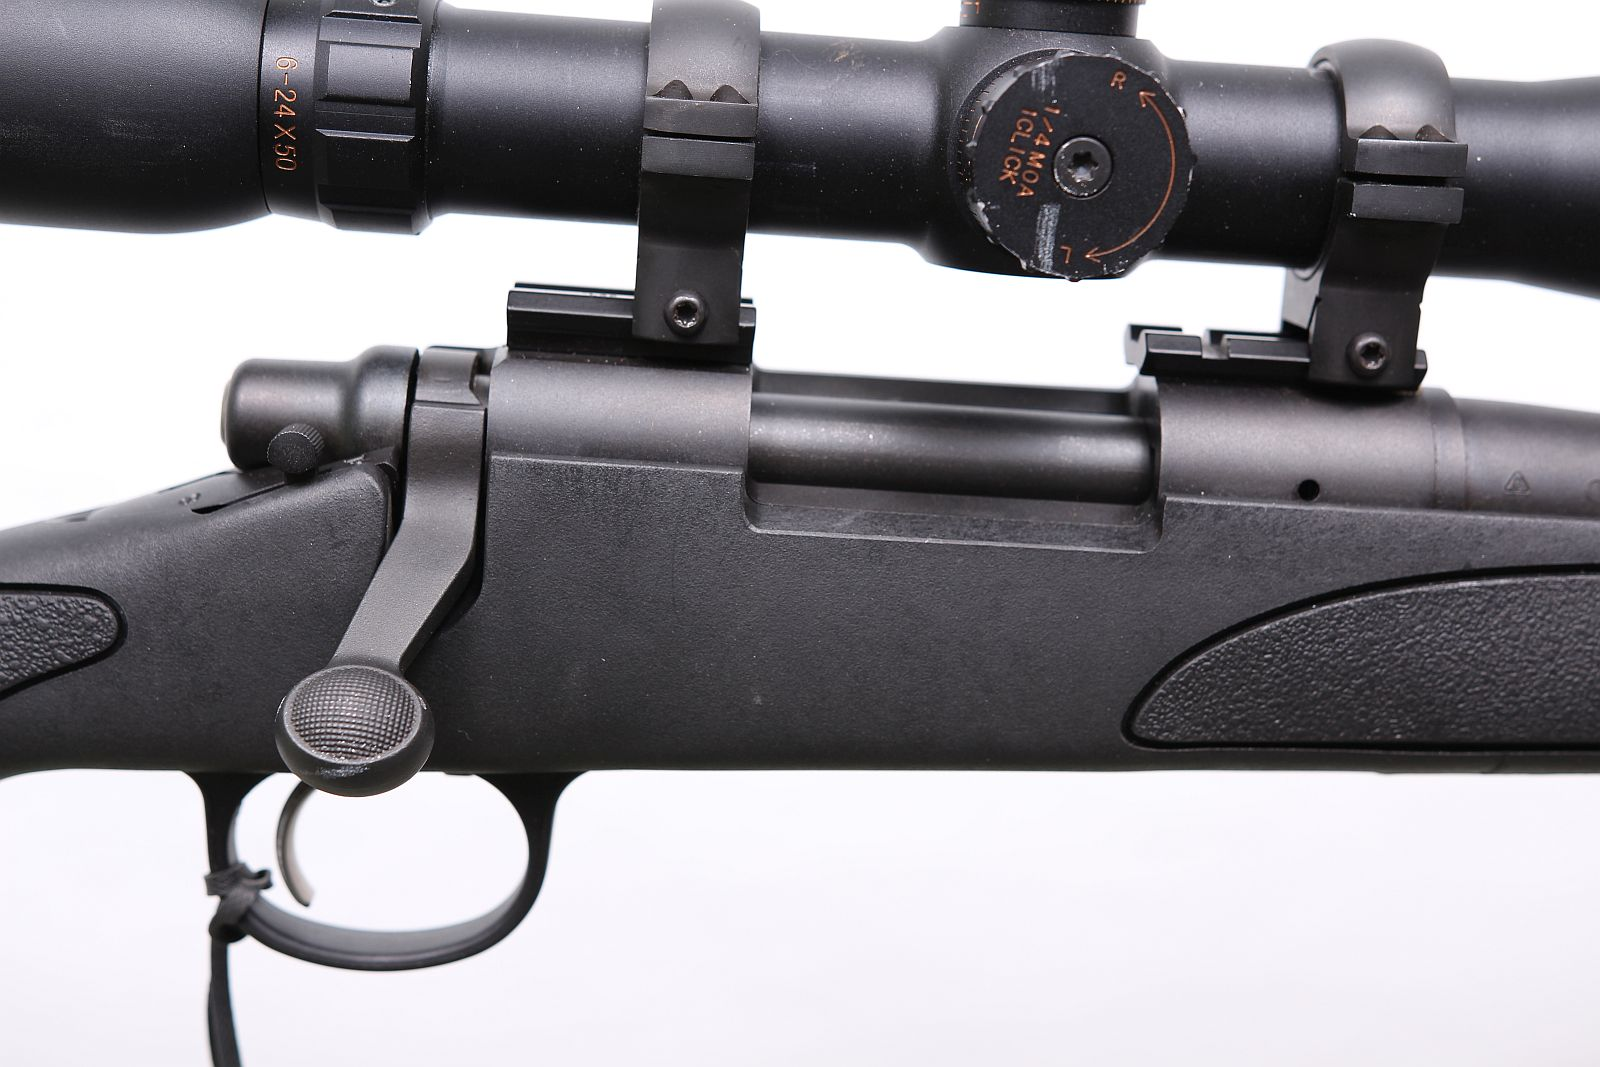 Remington 700 ADL Review | The Hunting Gear Guy